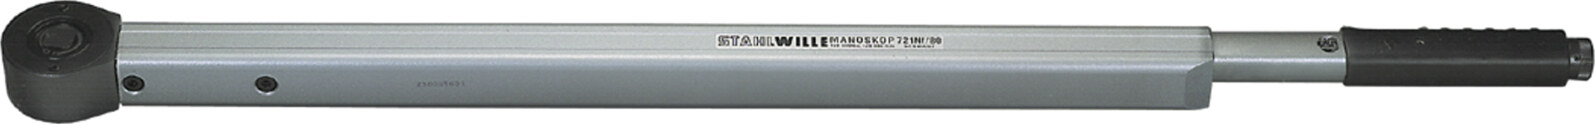 Stahlwille Service MANOSKOP® torque wrench No.721NF/80 160-800 N·m square drive 3/4